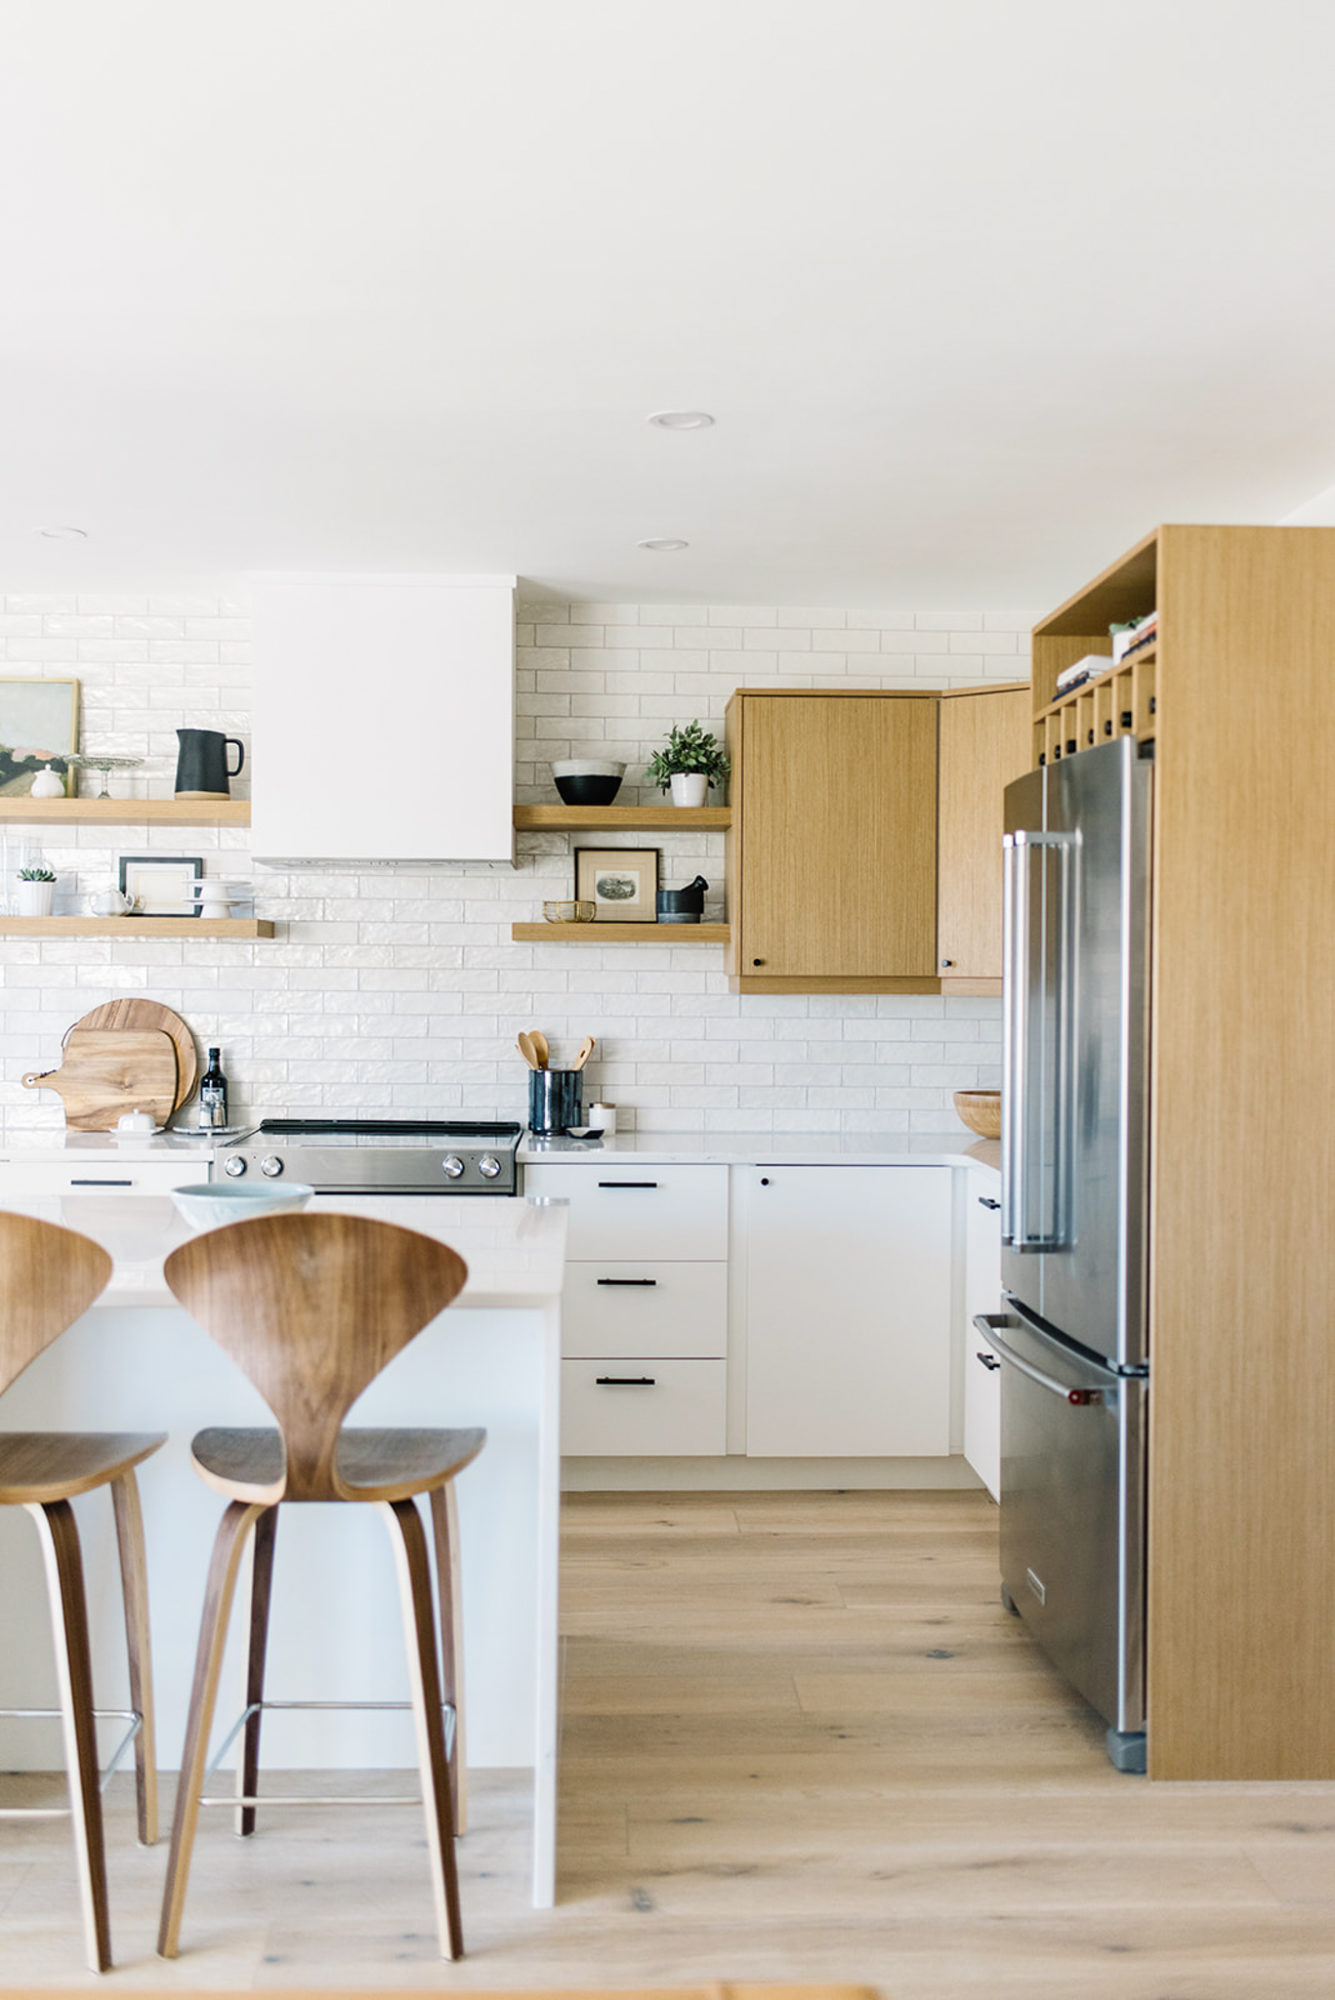 One Room Challenge Fall 2018 | This modern Scandinavian kitchen makeover is beautiful with its two-tone cabinets, white subway tile, and white oak floors.